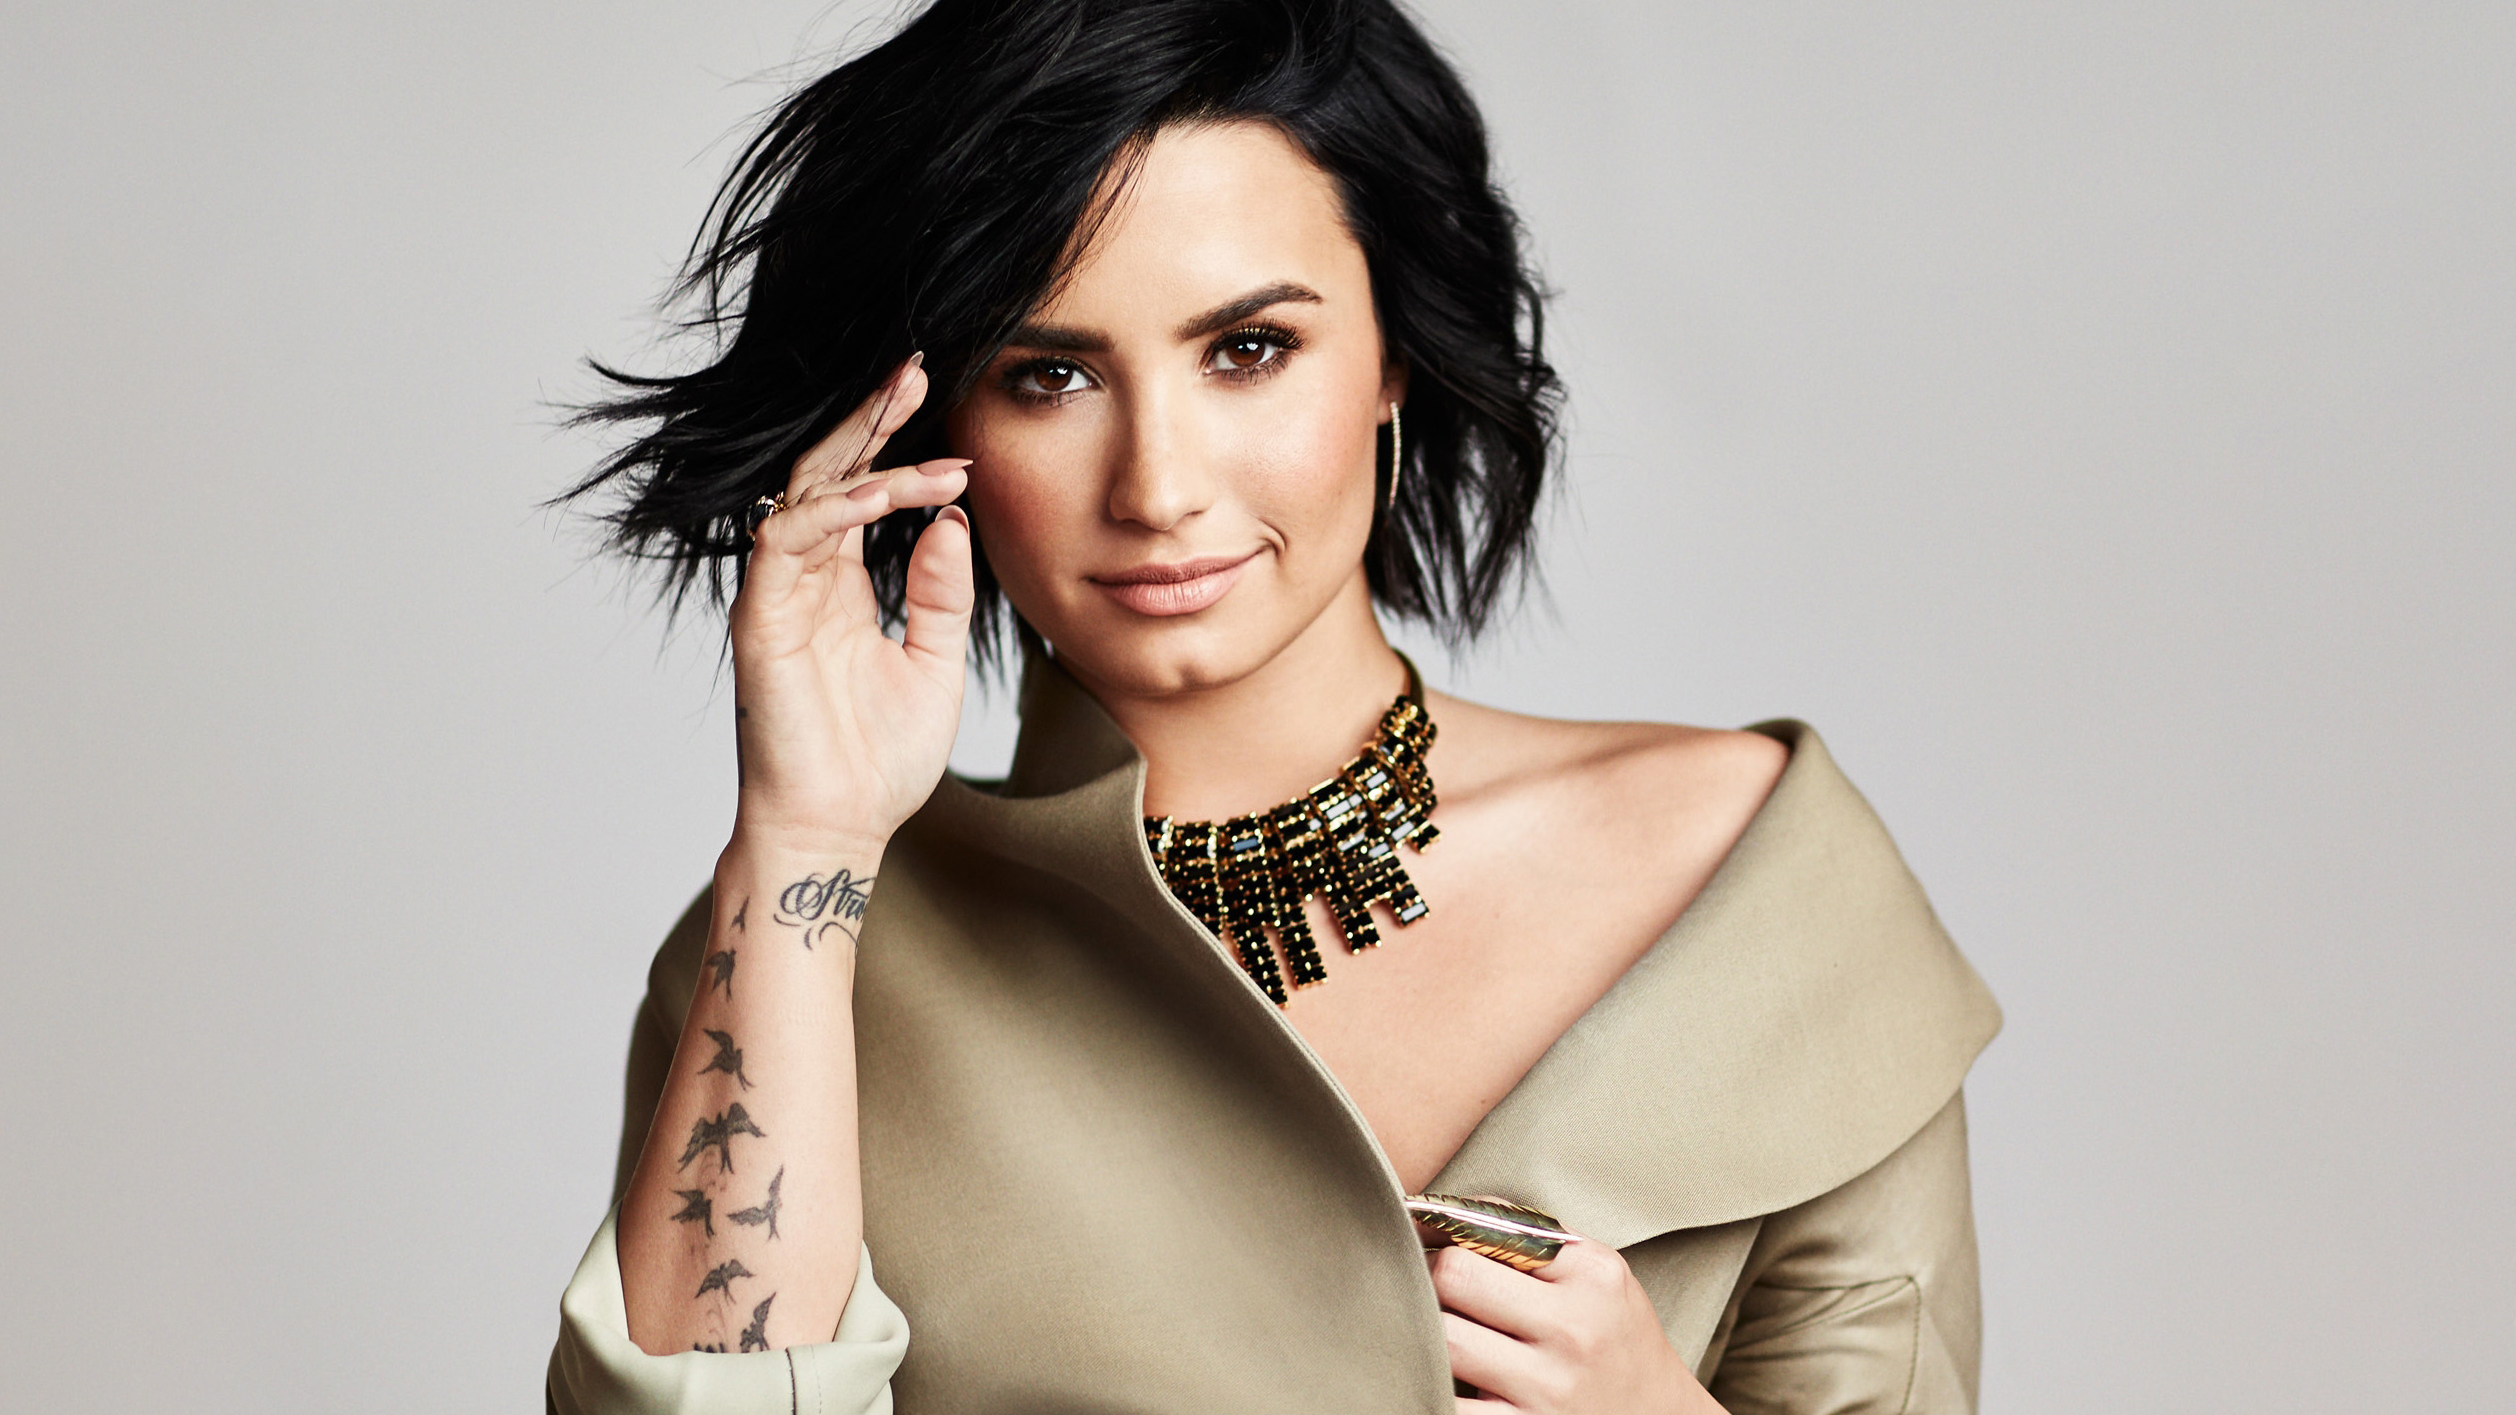 Demi Lovato Wallpapers...